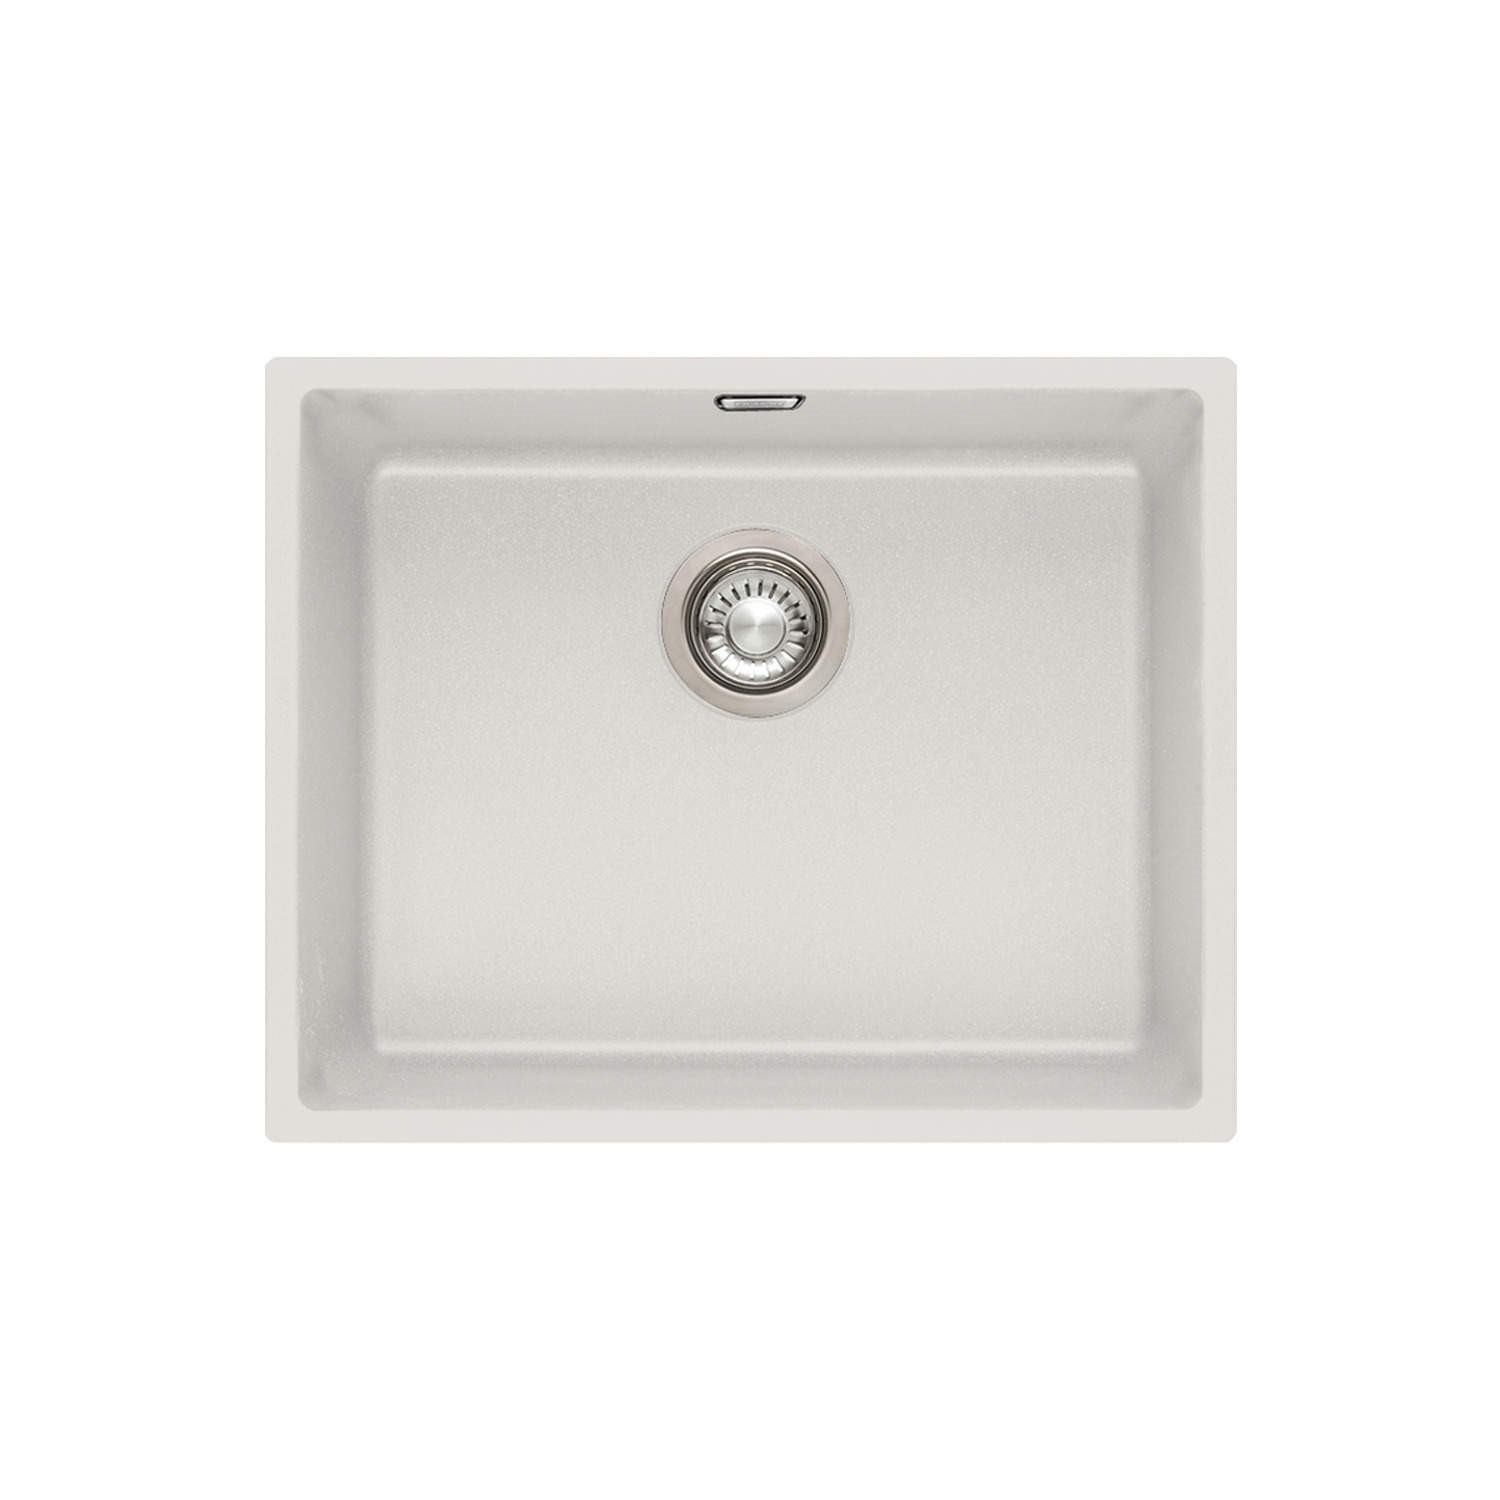 Franke SID 110 50 Sirius Large 1.0 Bowl Undermount Tectonite Composite Sink  Polar White